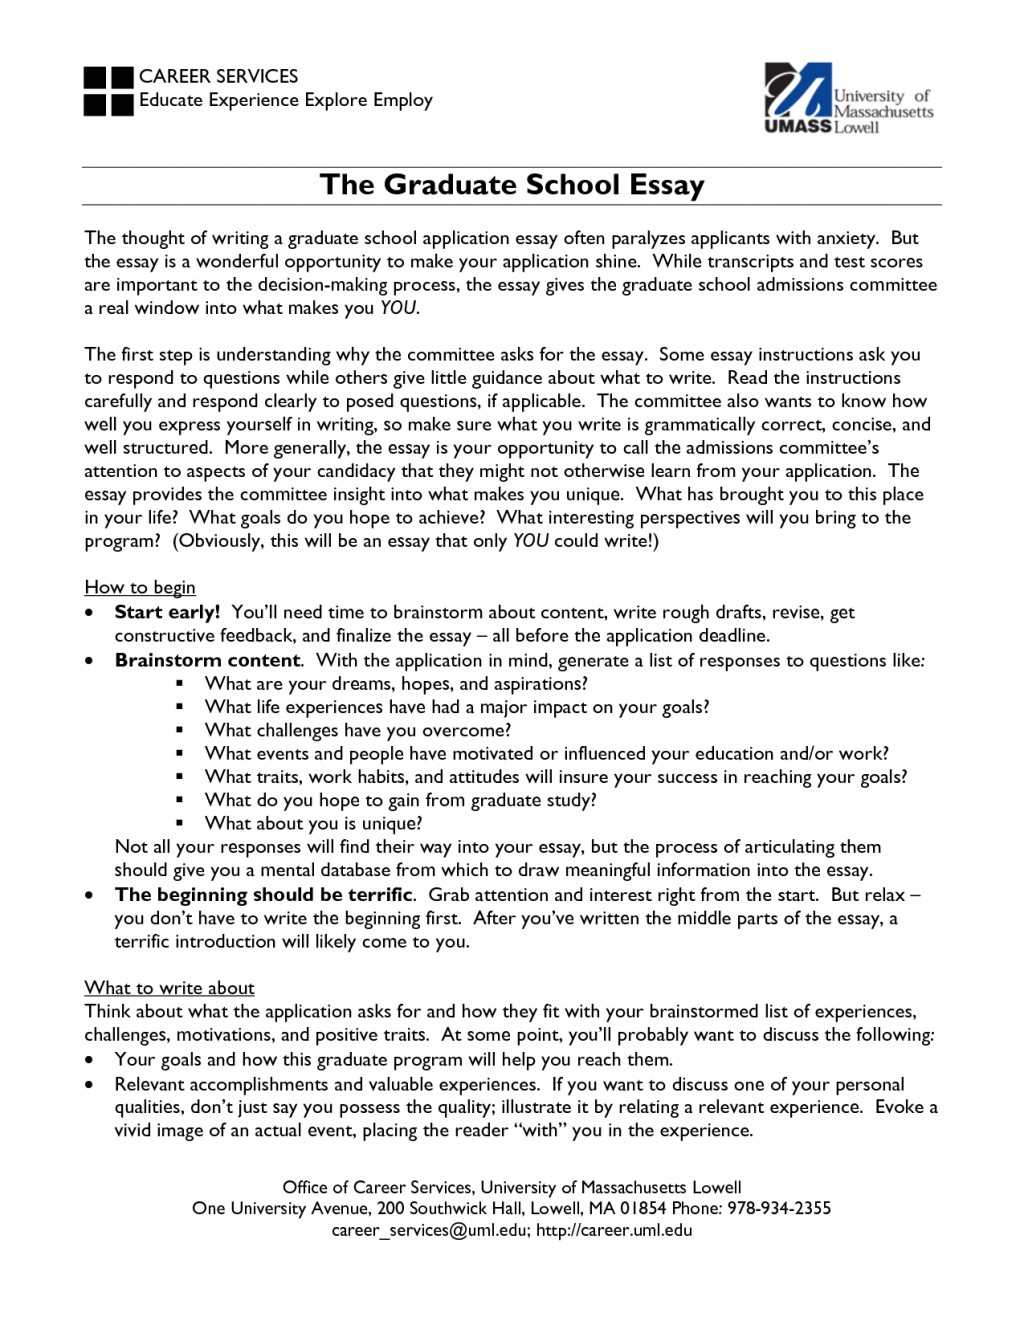 015 Essay Example 36nyax20x5 Excellent Graduation Sample High School Essays For 8th Grade Large